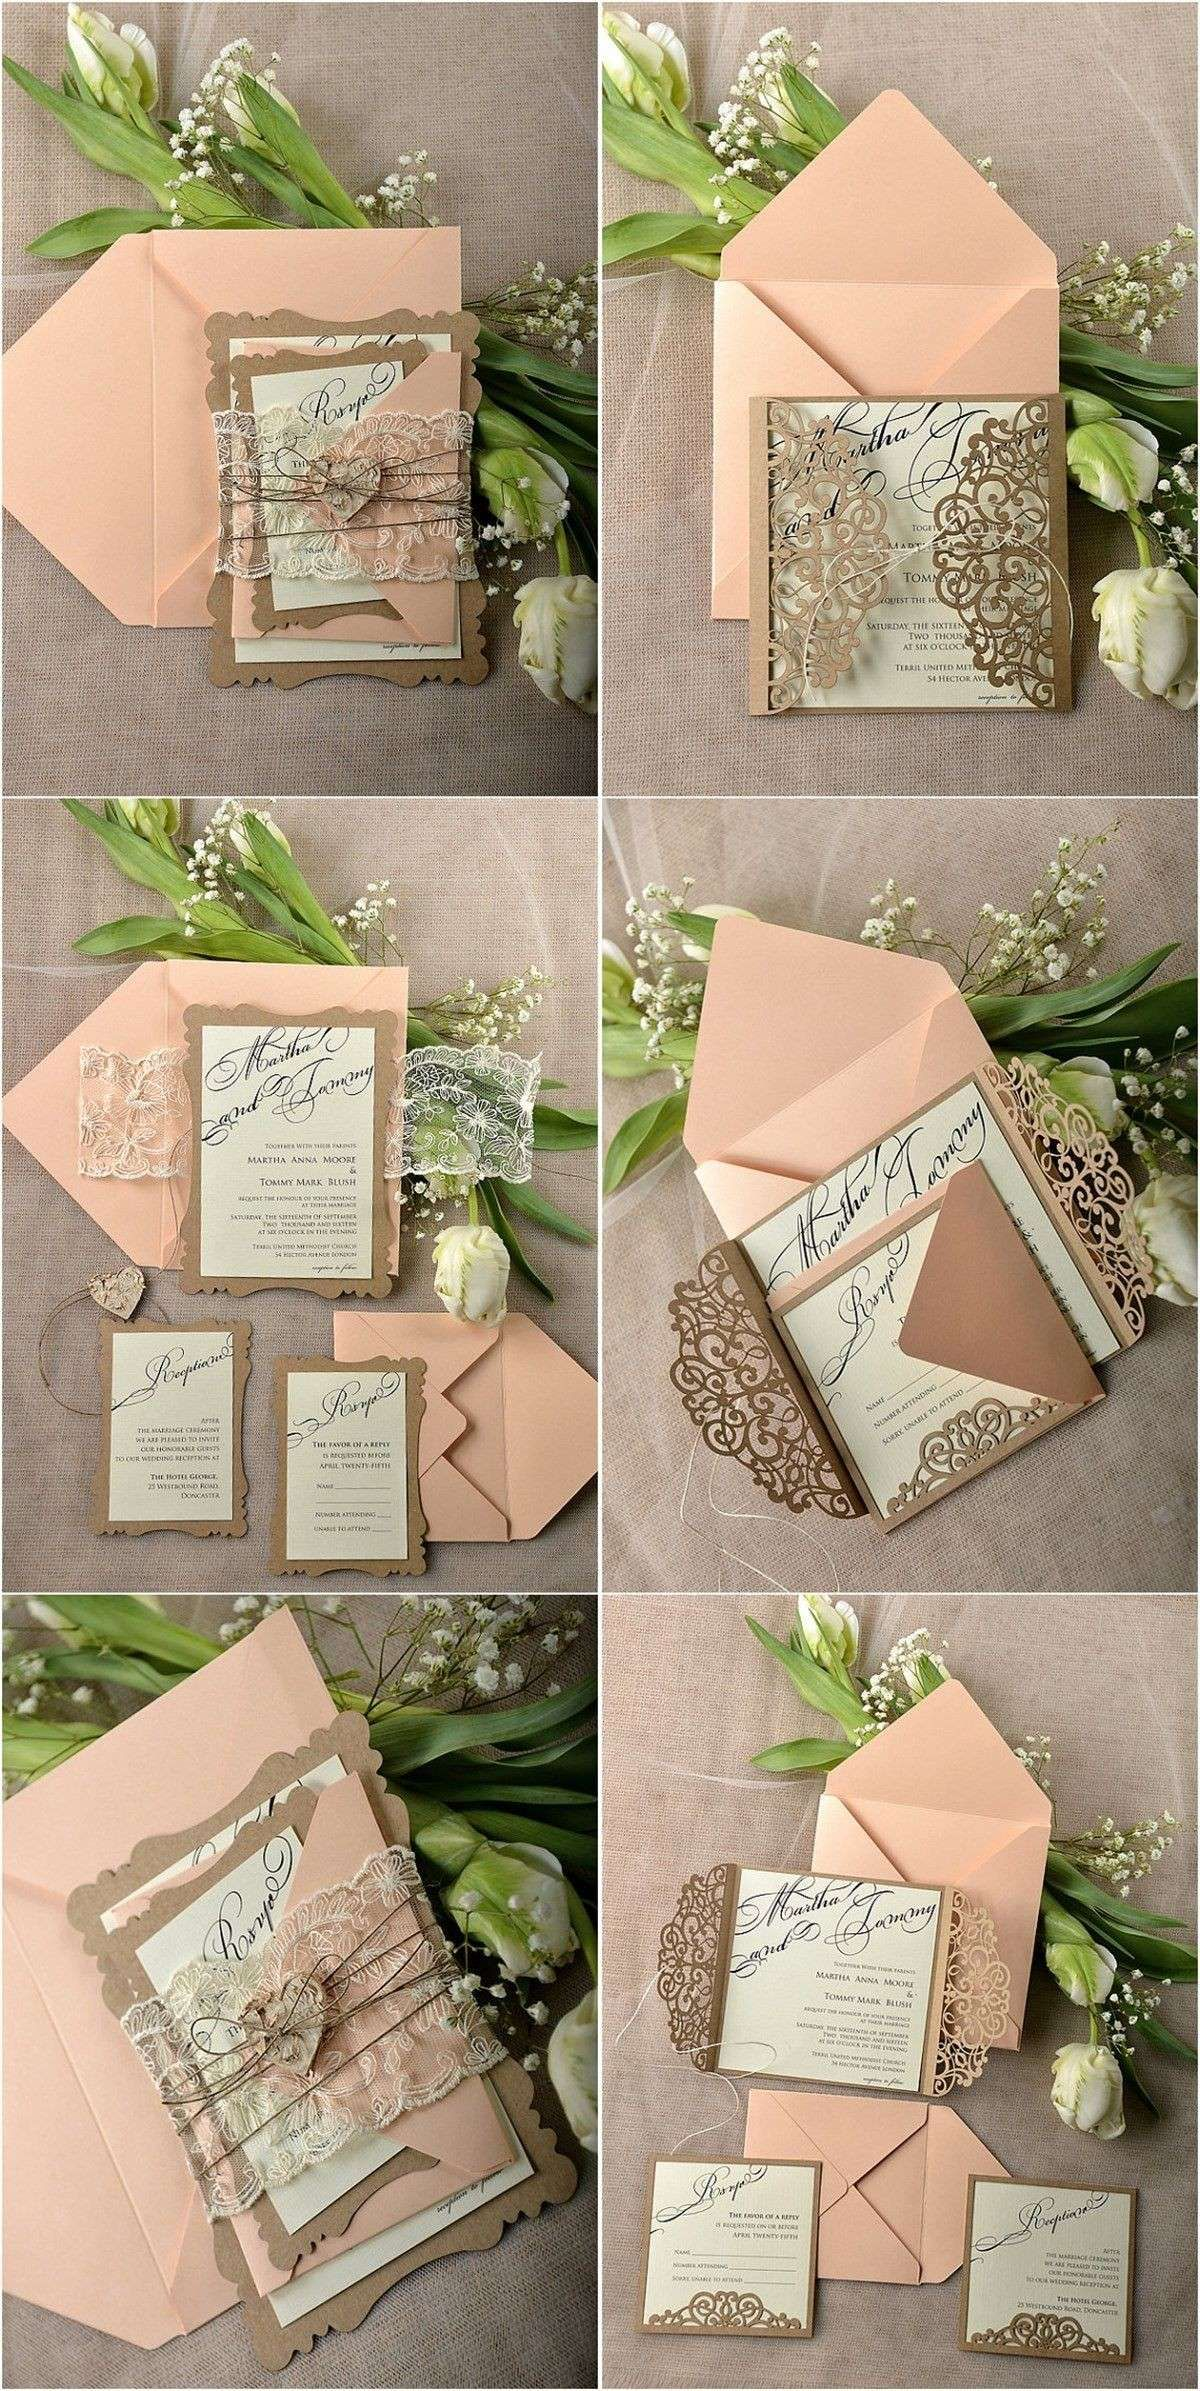 The Best Rustic Wedding Invitation Ideas To Keep Your Budget Lovely Wedding Wedding Invitations Rustic Wedding Invitations Diy Rustic Rustic Wedding Stationery